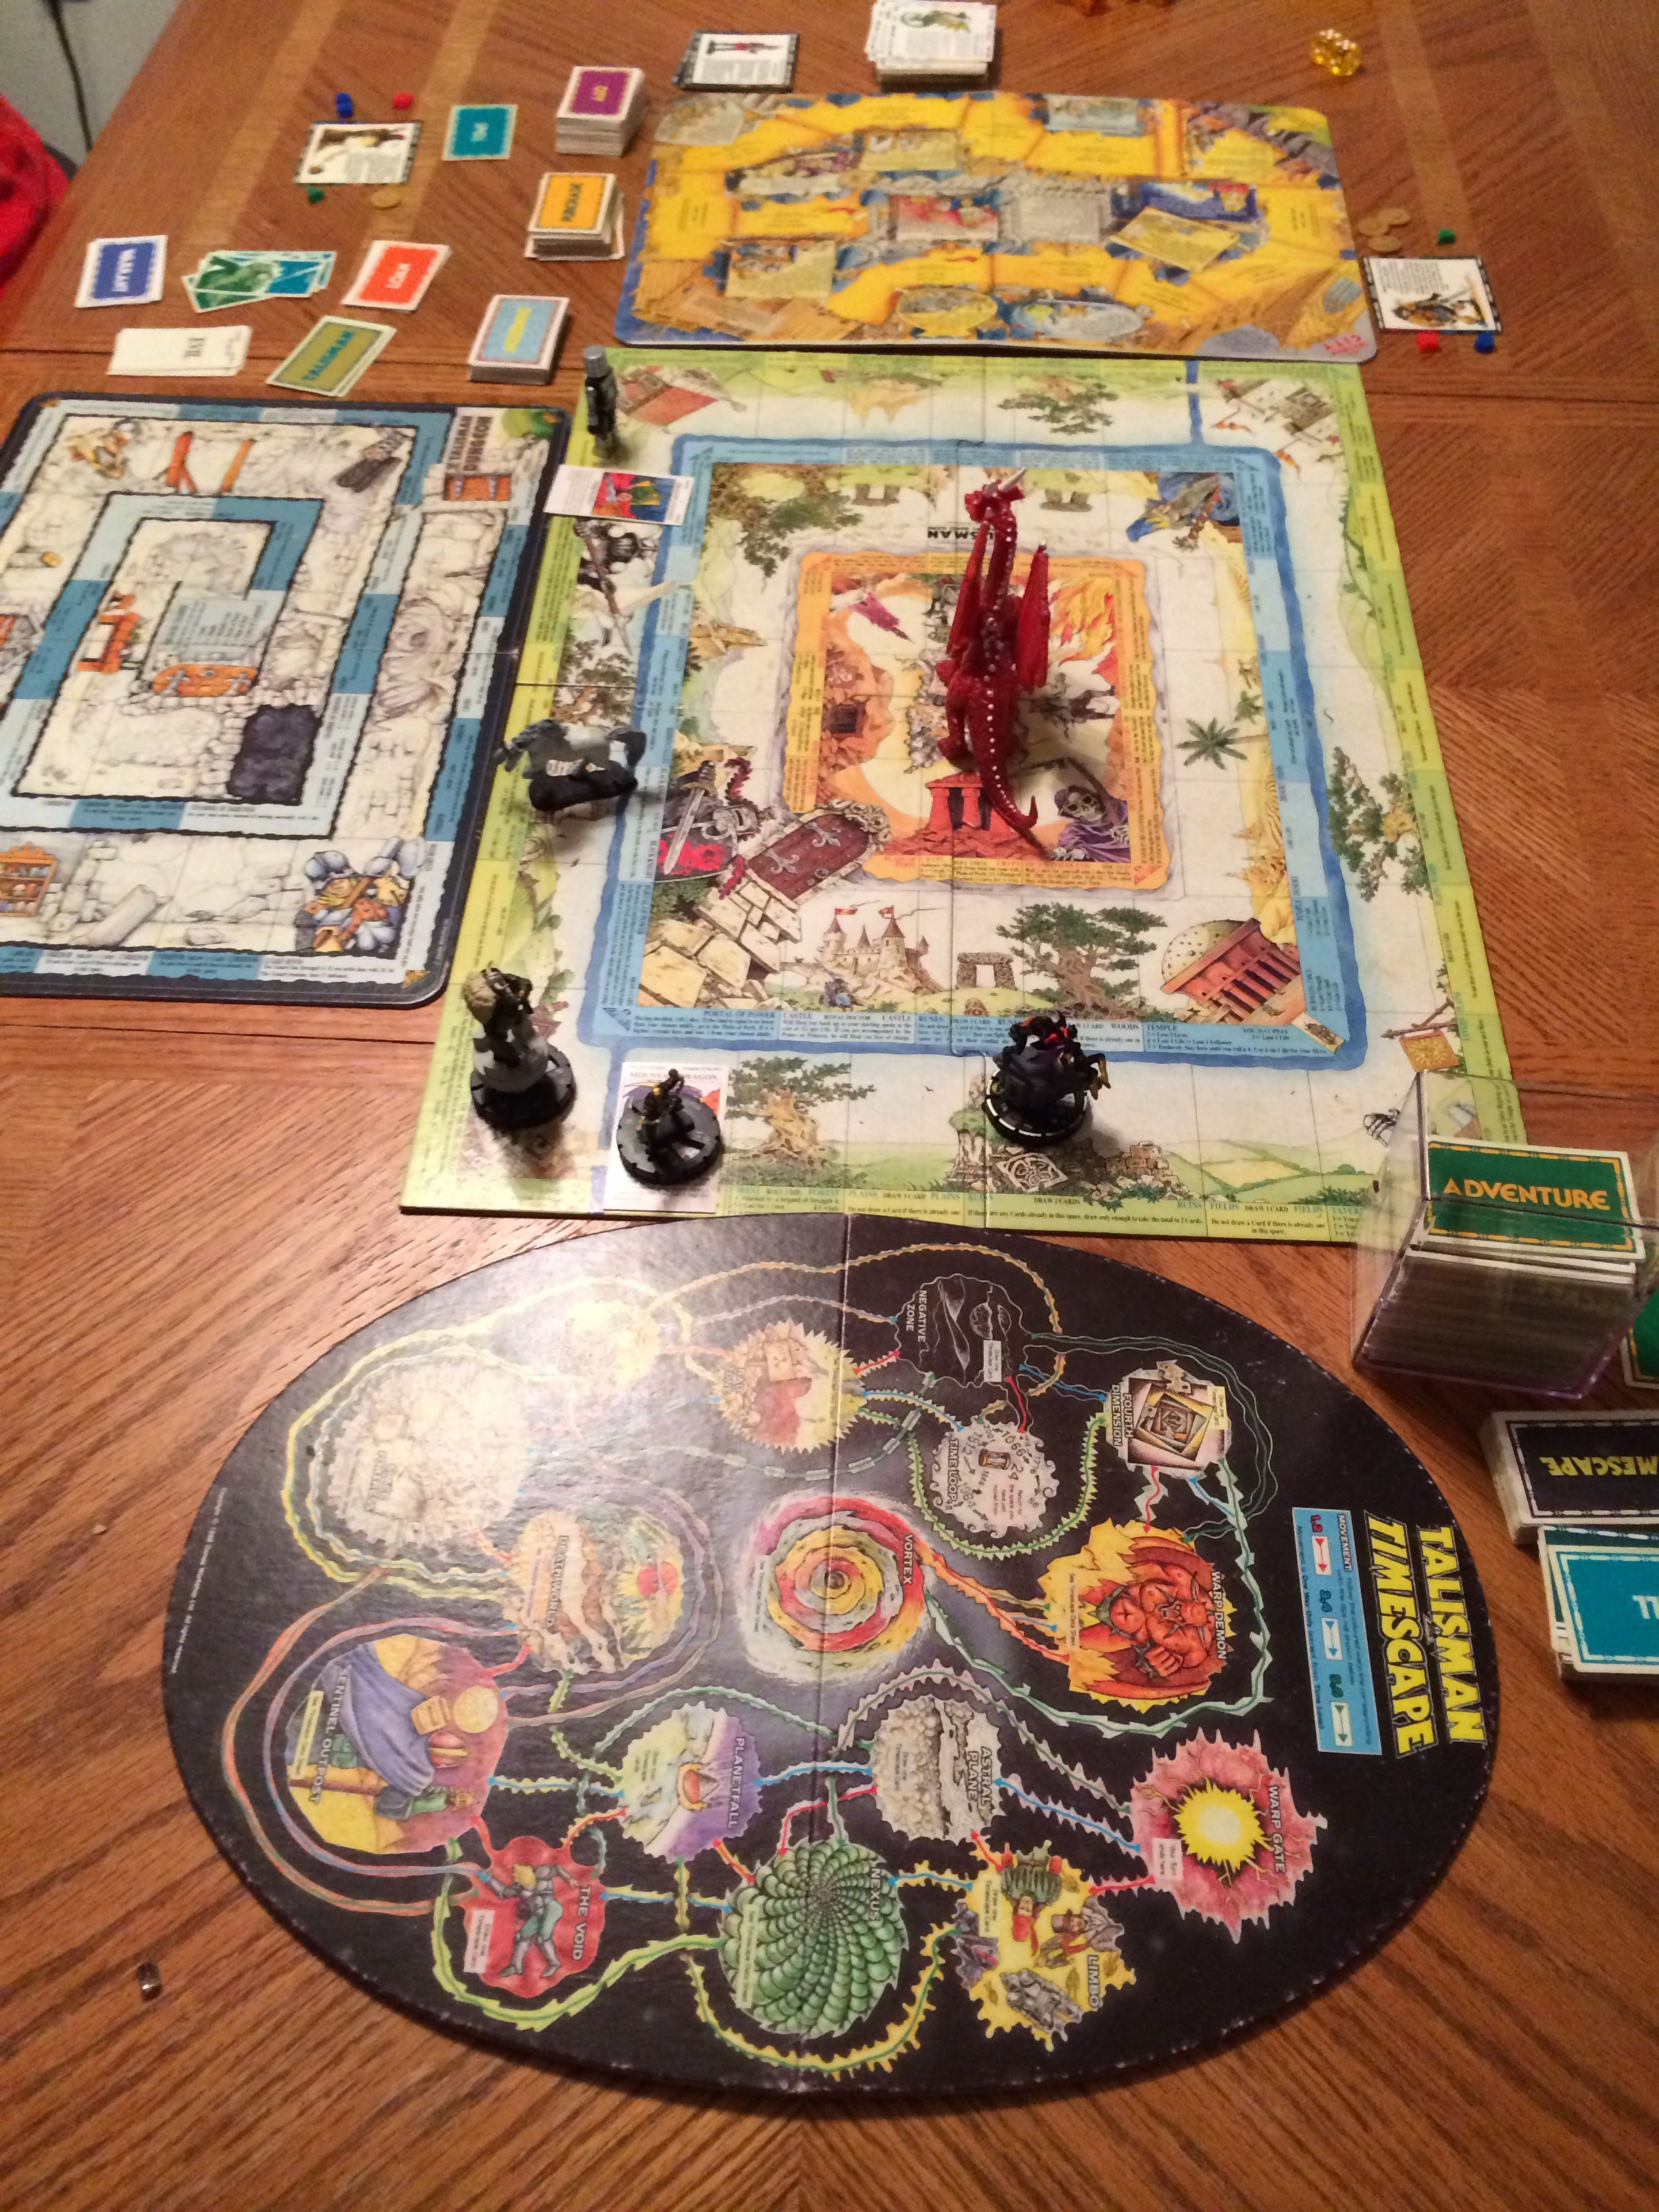 Talisman (Second Edition). Still the best game in the